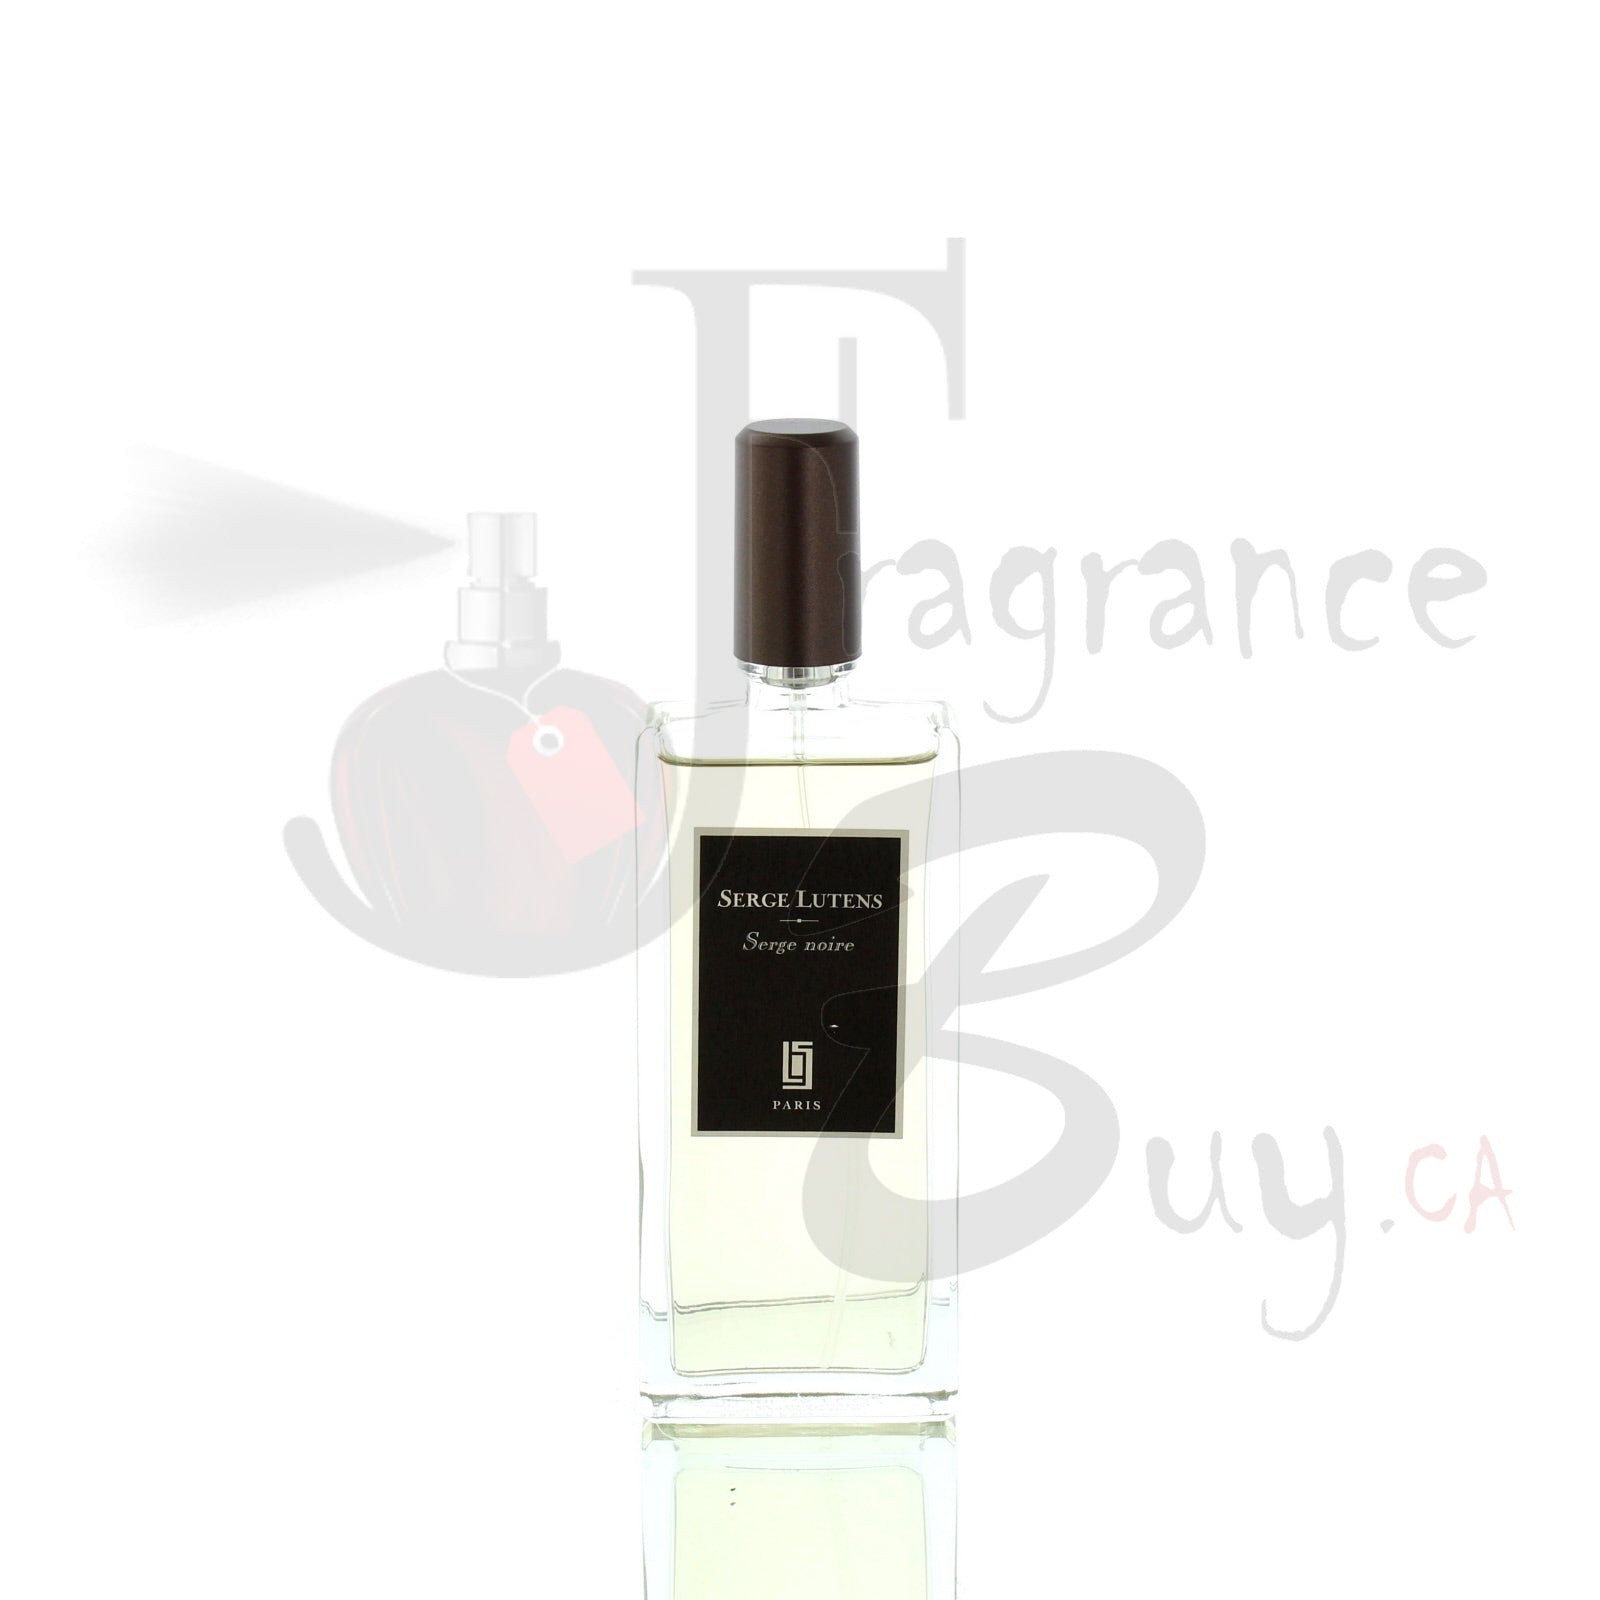 Serge Lutens Serge Noire For Man/Woman